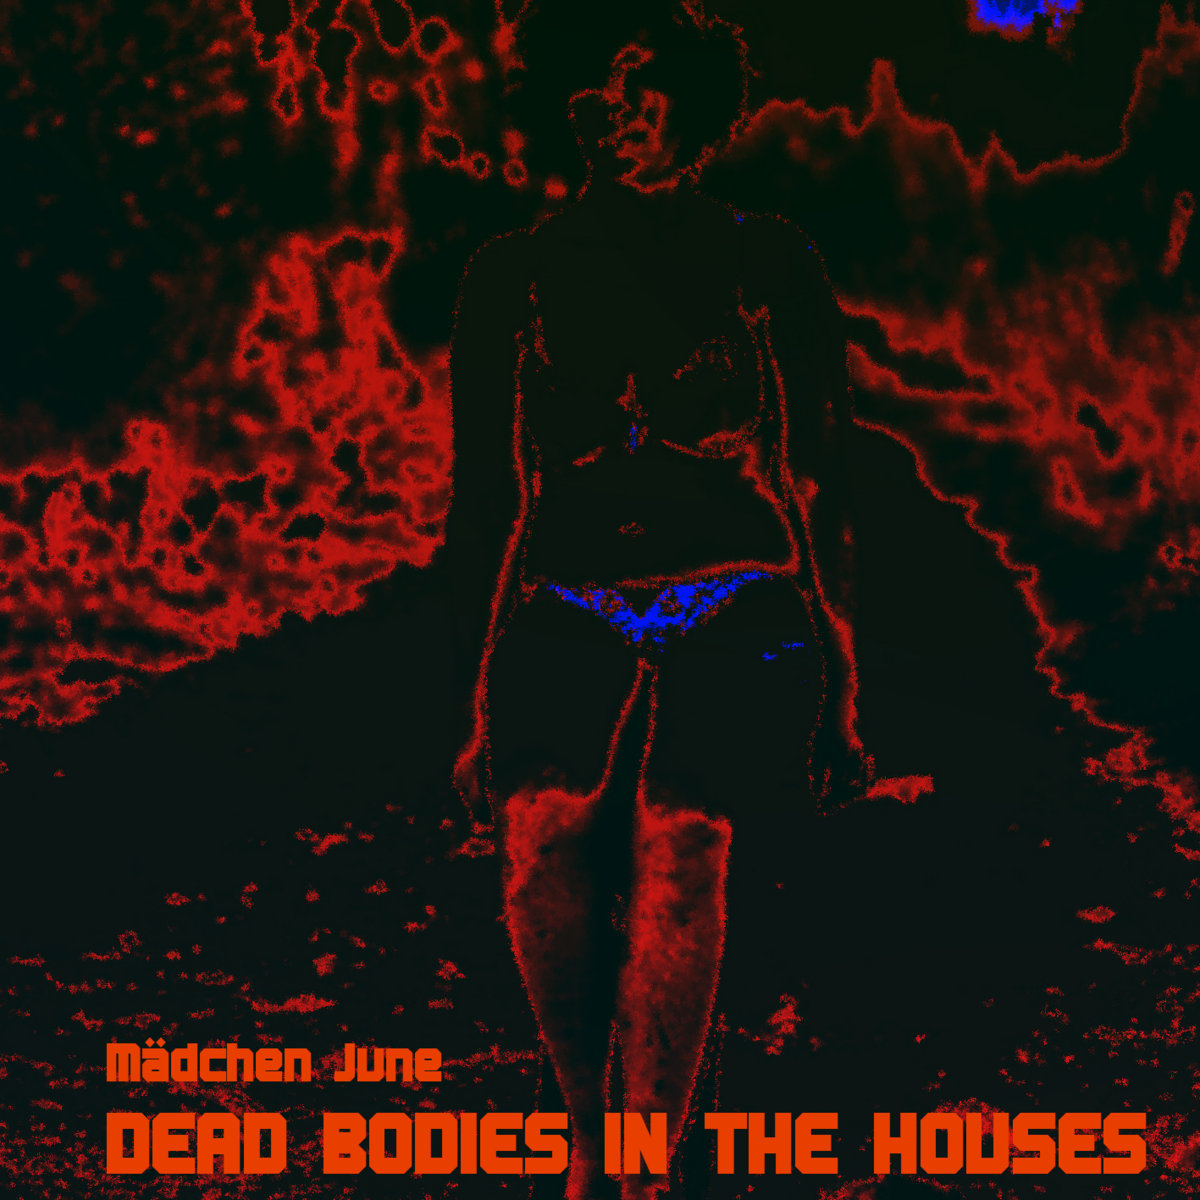 Mädchen June – DEAD BODIES IN THE HOUSES